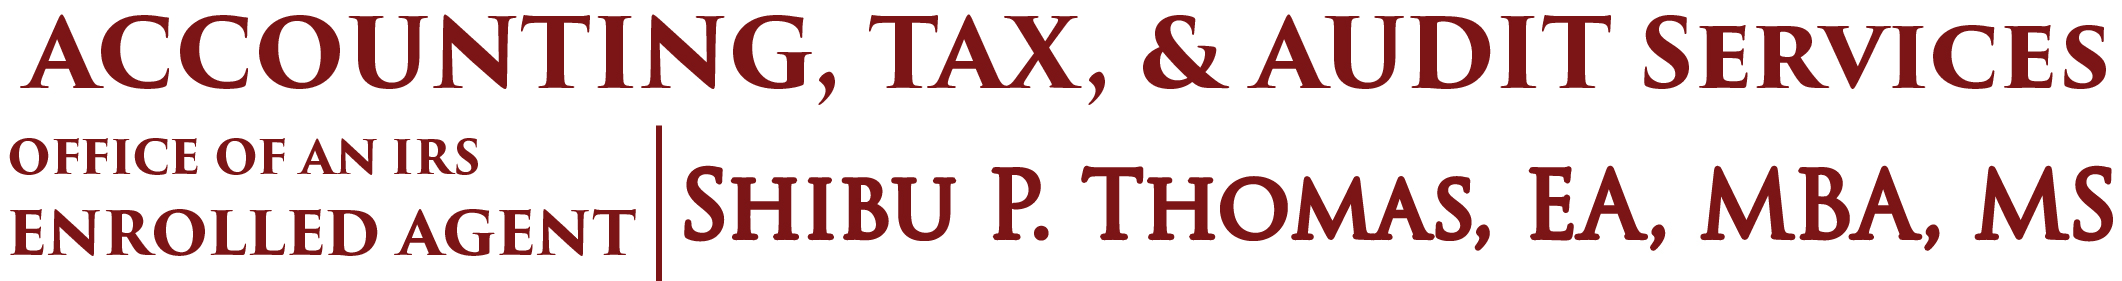 Staten Island, NY Accounting Firm | Tax Problems Page | Accounting, Tax, & Audit Services Shibu P. Thomas, EA, MBA, MS